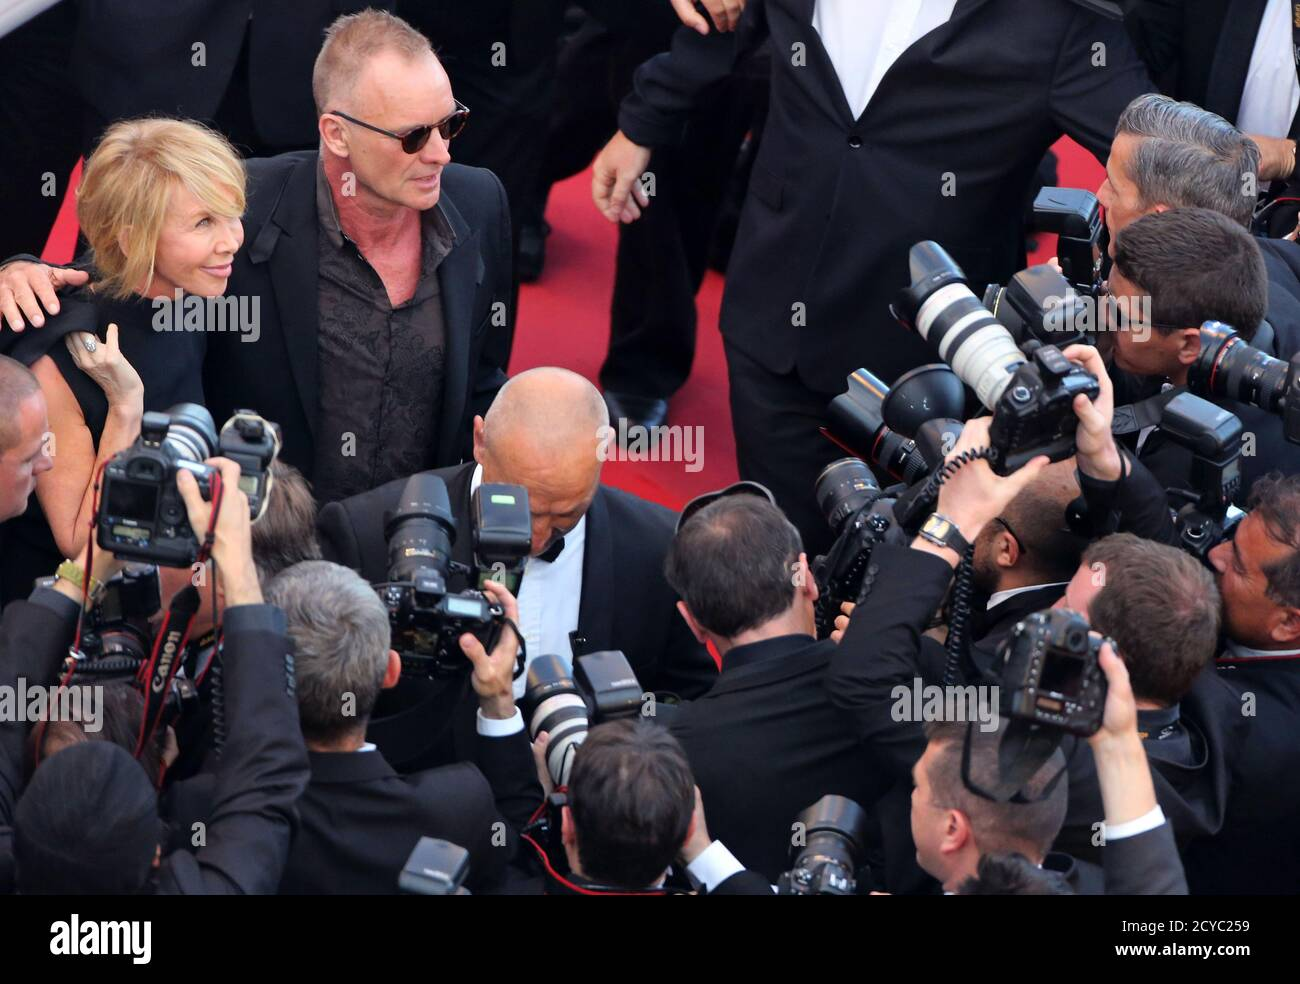 "Singer Sting and his wife British actress and producer Trudie Styler arrive on the red carpet for the film ""Mud"", in competition at the 65th Cannes Film Festival, May 26, 2012.            REUTERS/Loic Venance/Pool (FRANCE  - Tags: ENTERTAINMENT) Banque D'Images"